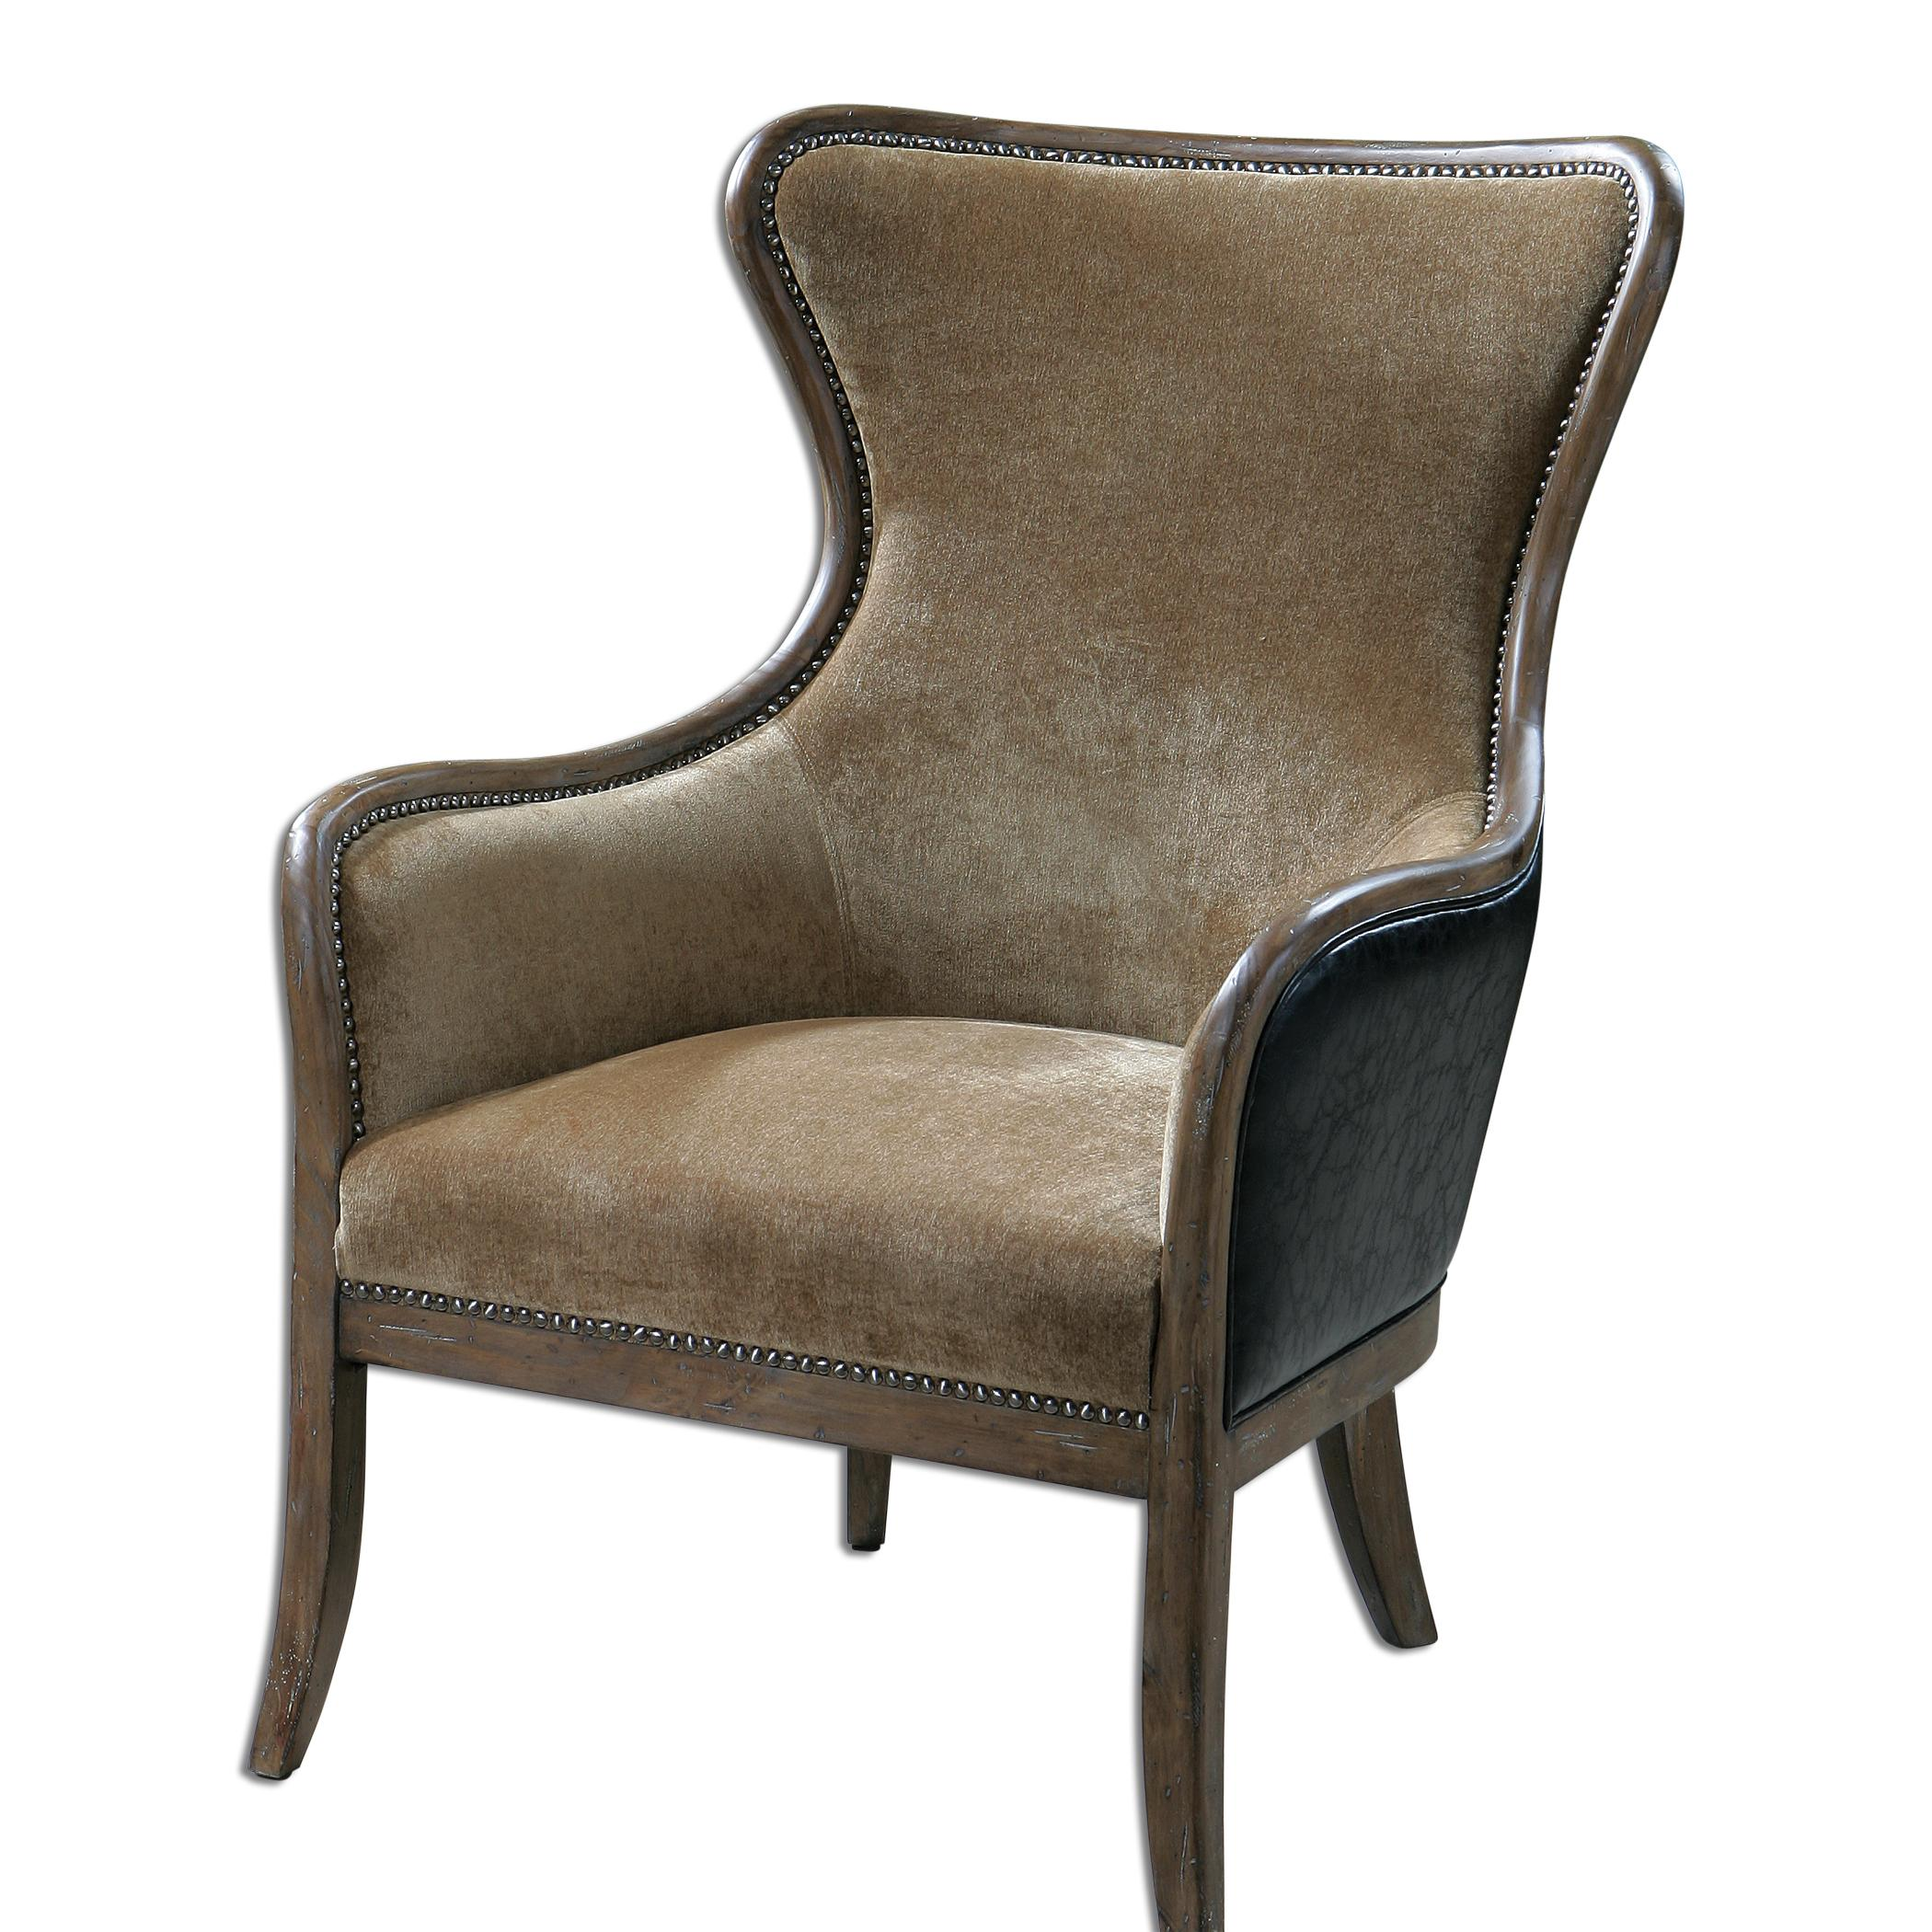 Accent Furniture - Accent Chairs Snowden Tan Wing Chair by Uttermost at O'Dunk & O'Bright Furniture